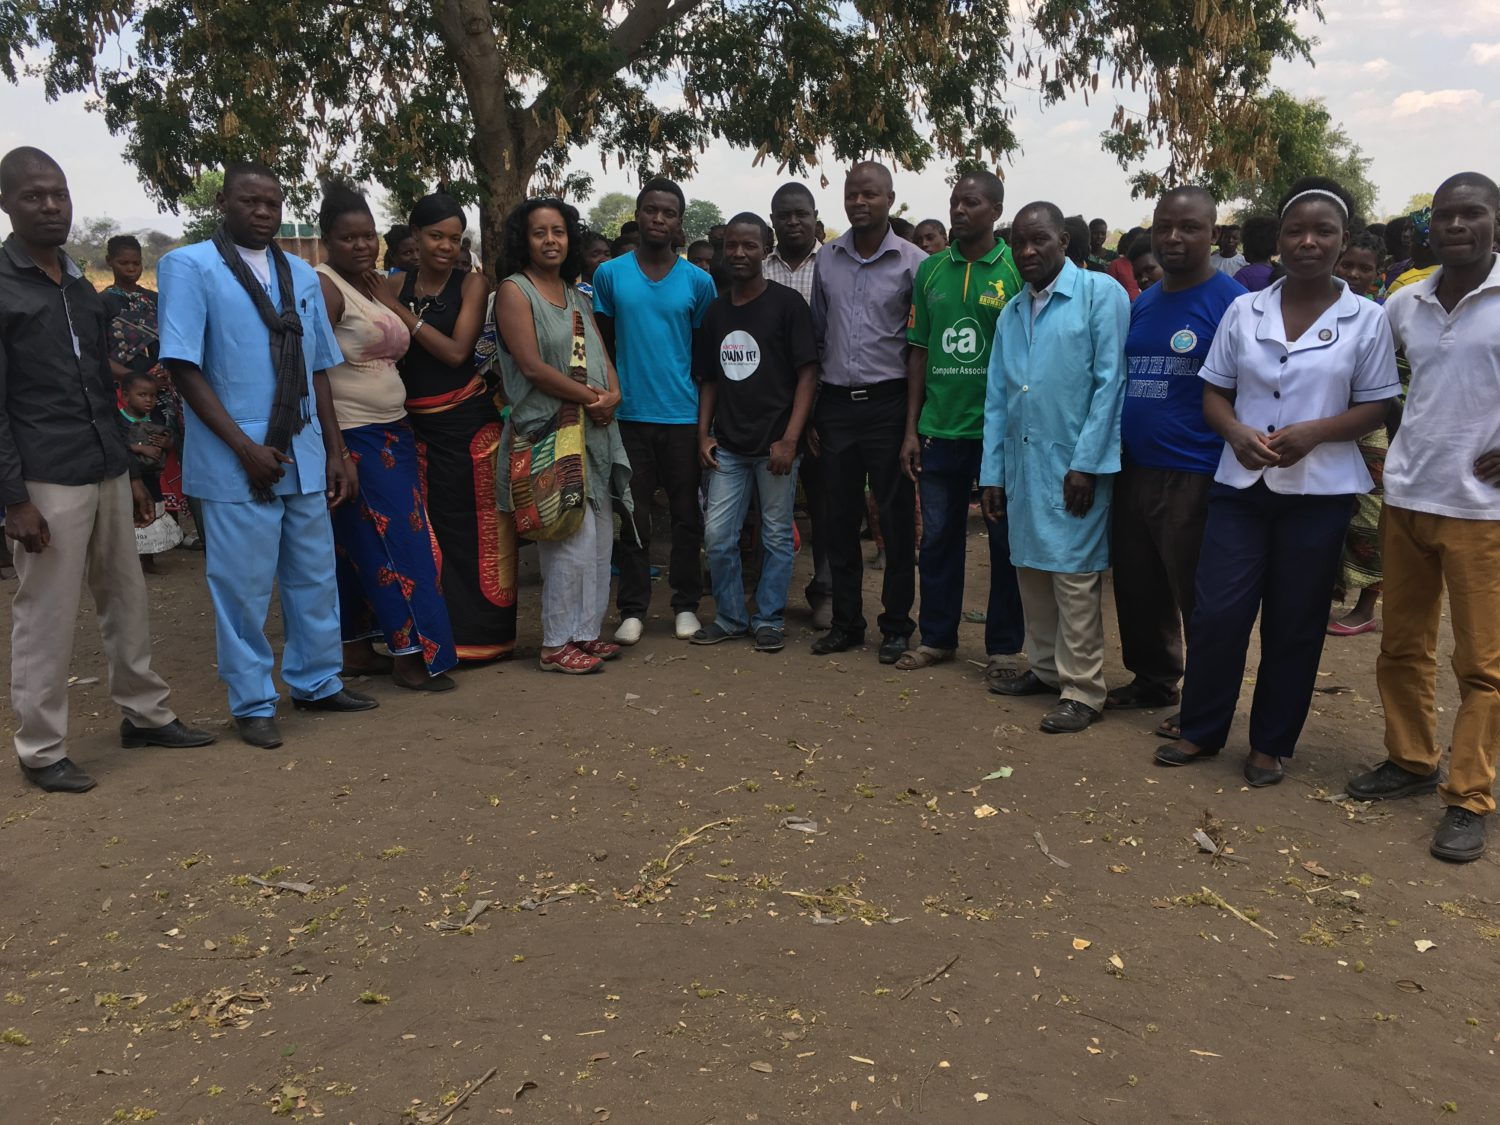 Evaluation of Program N'zatonse – Strengthening Public Private Partnership in Sexual and Reproductive Health and Rights, PSI/KfW Malawi